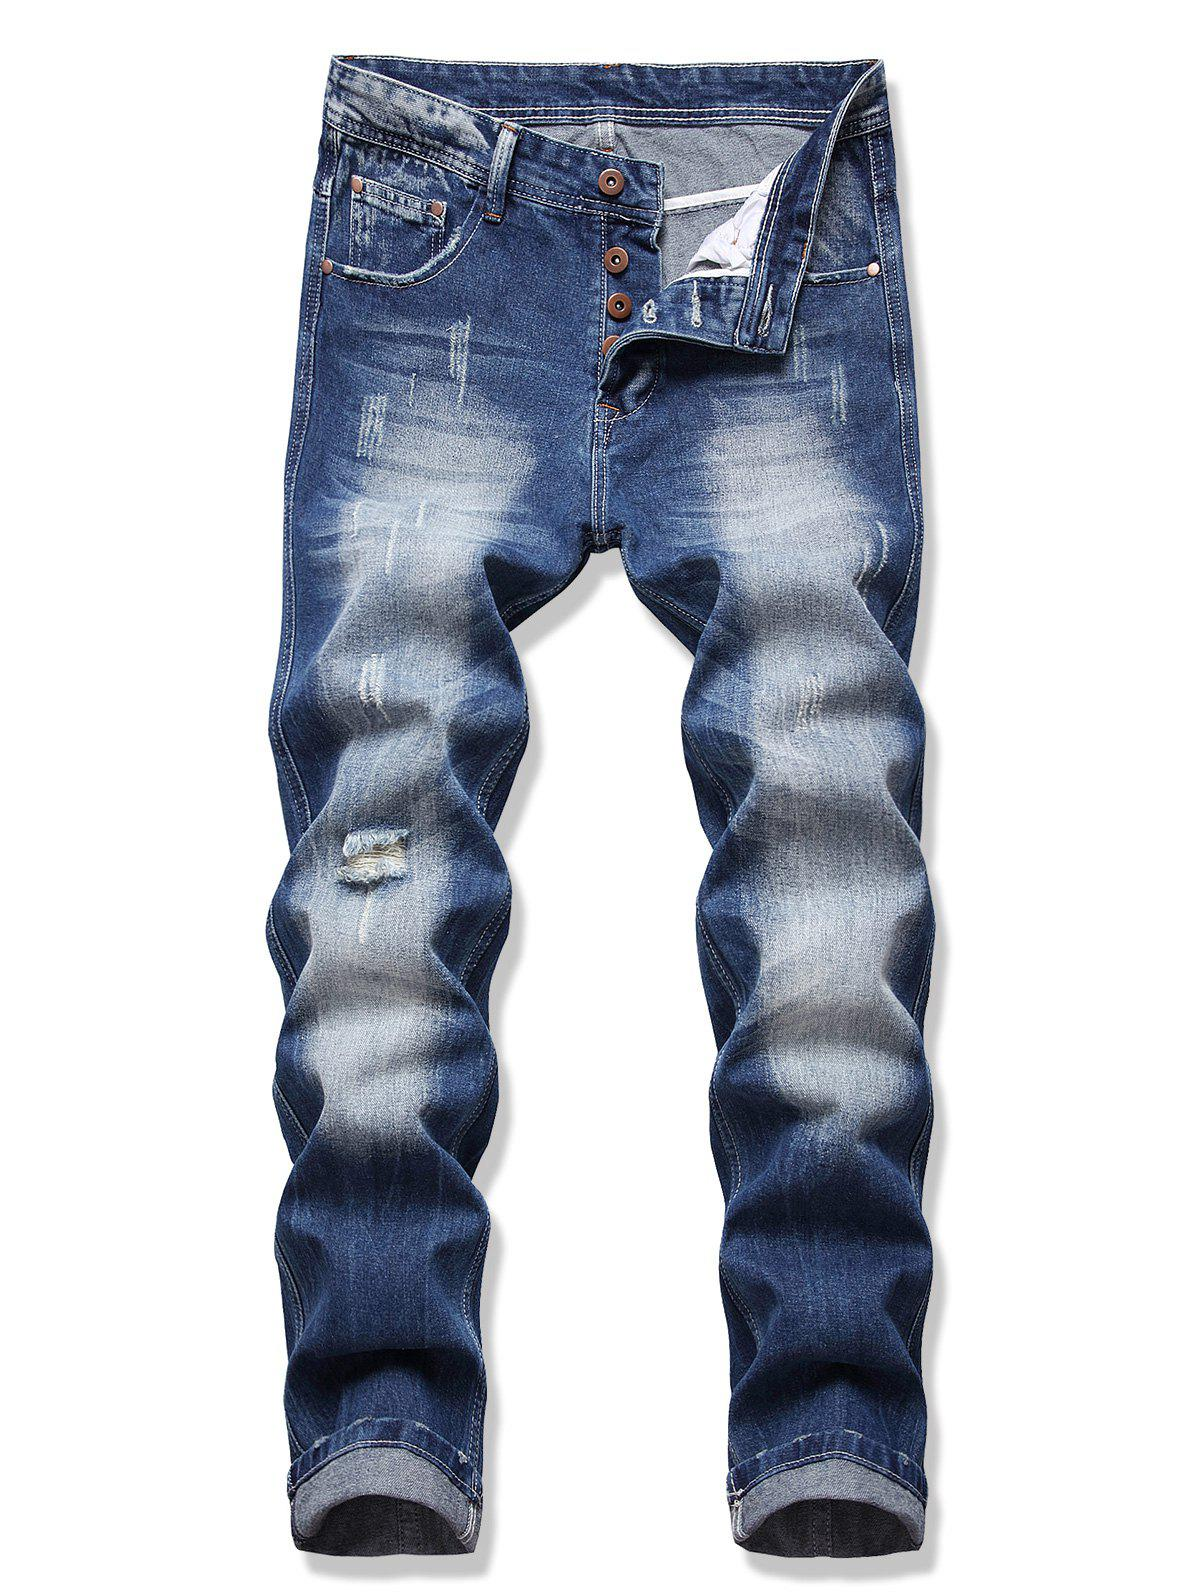 New Distressed Destroy Wash Scratch Jeans